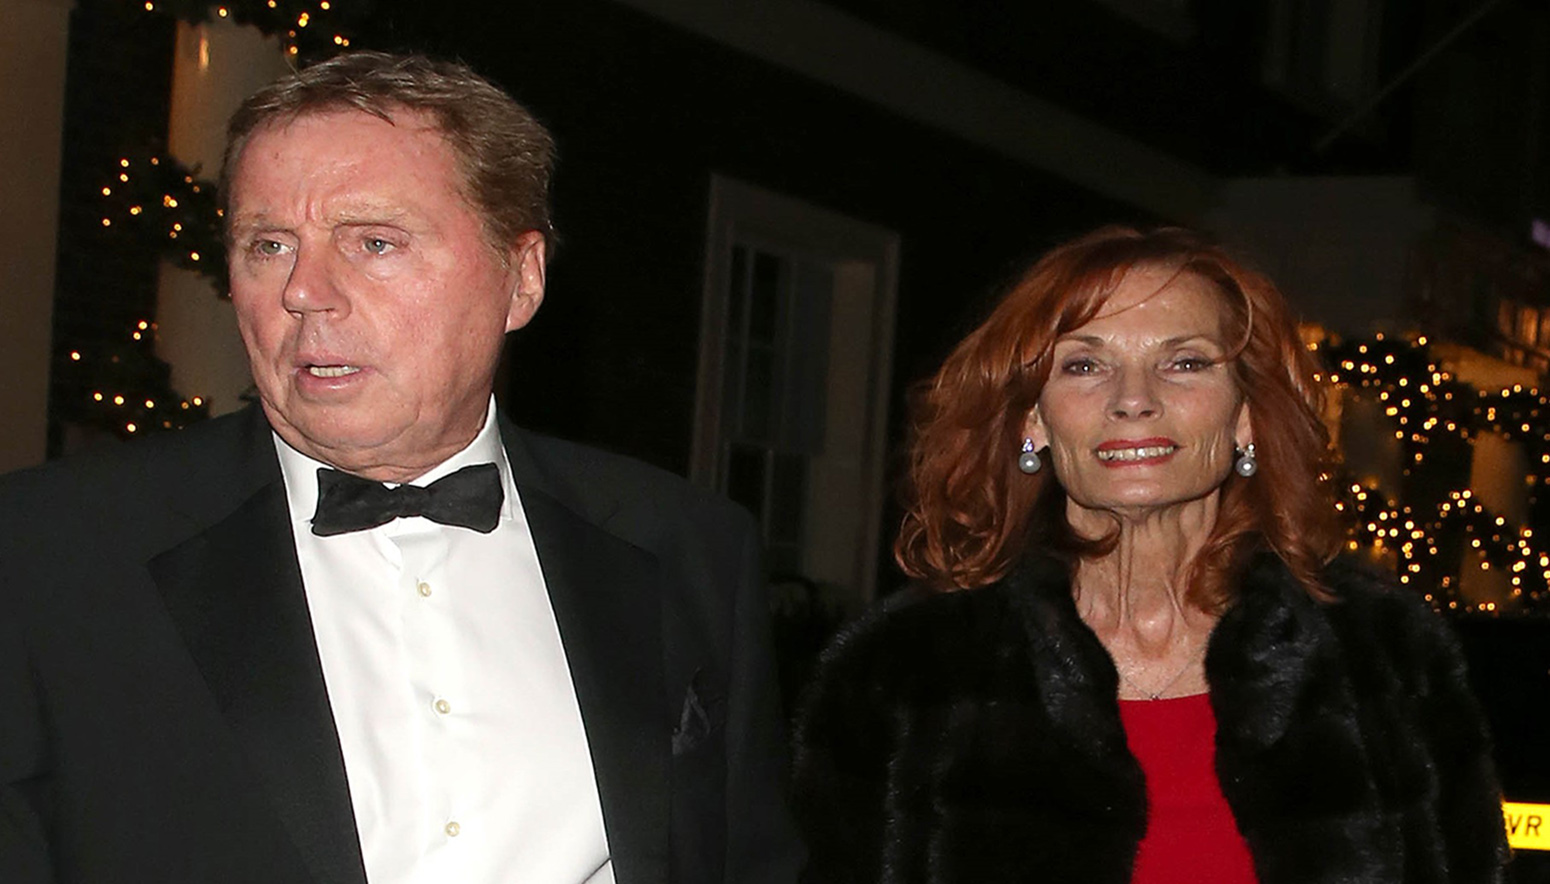 Fans brand Harry Redknapp and wife Sandra 'couple goals' as they celebrate anniversary